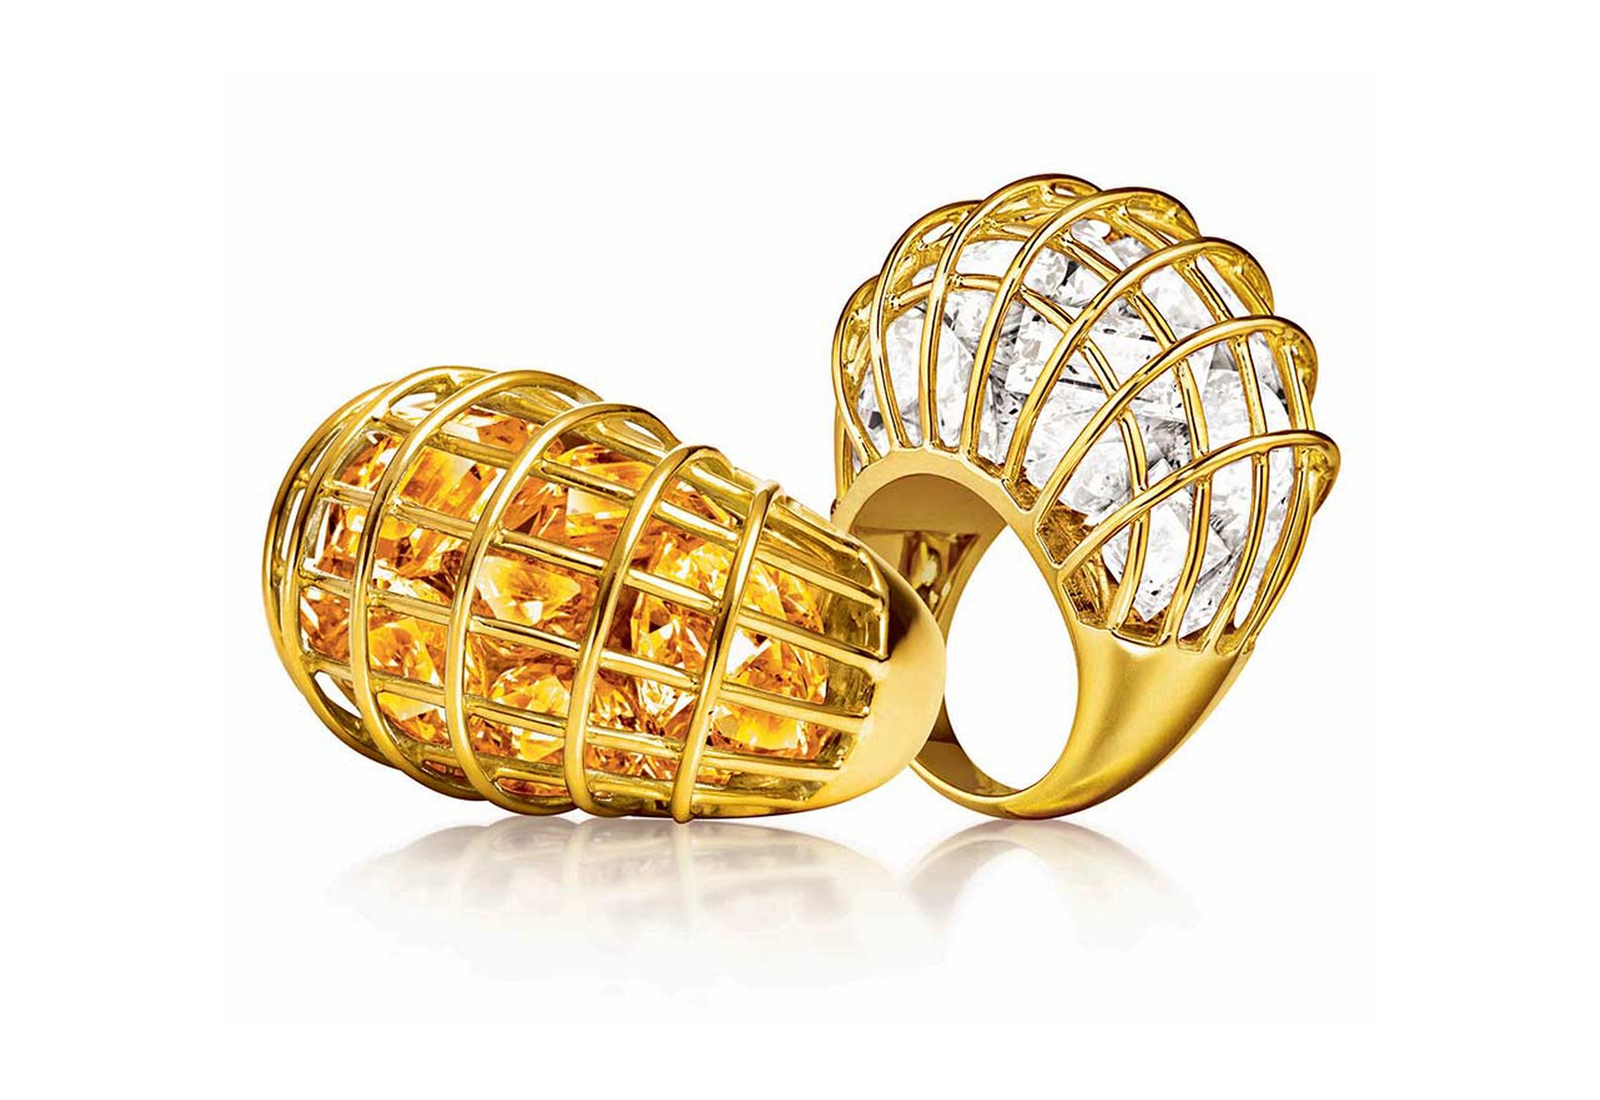 Veradura 'Cage' rings in 18k yellow gold, with citrine and rock crystal